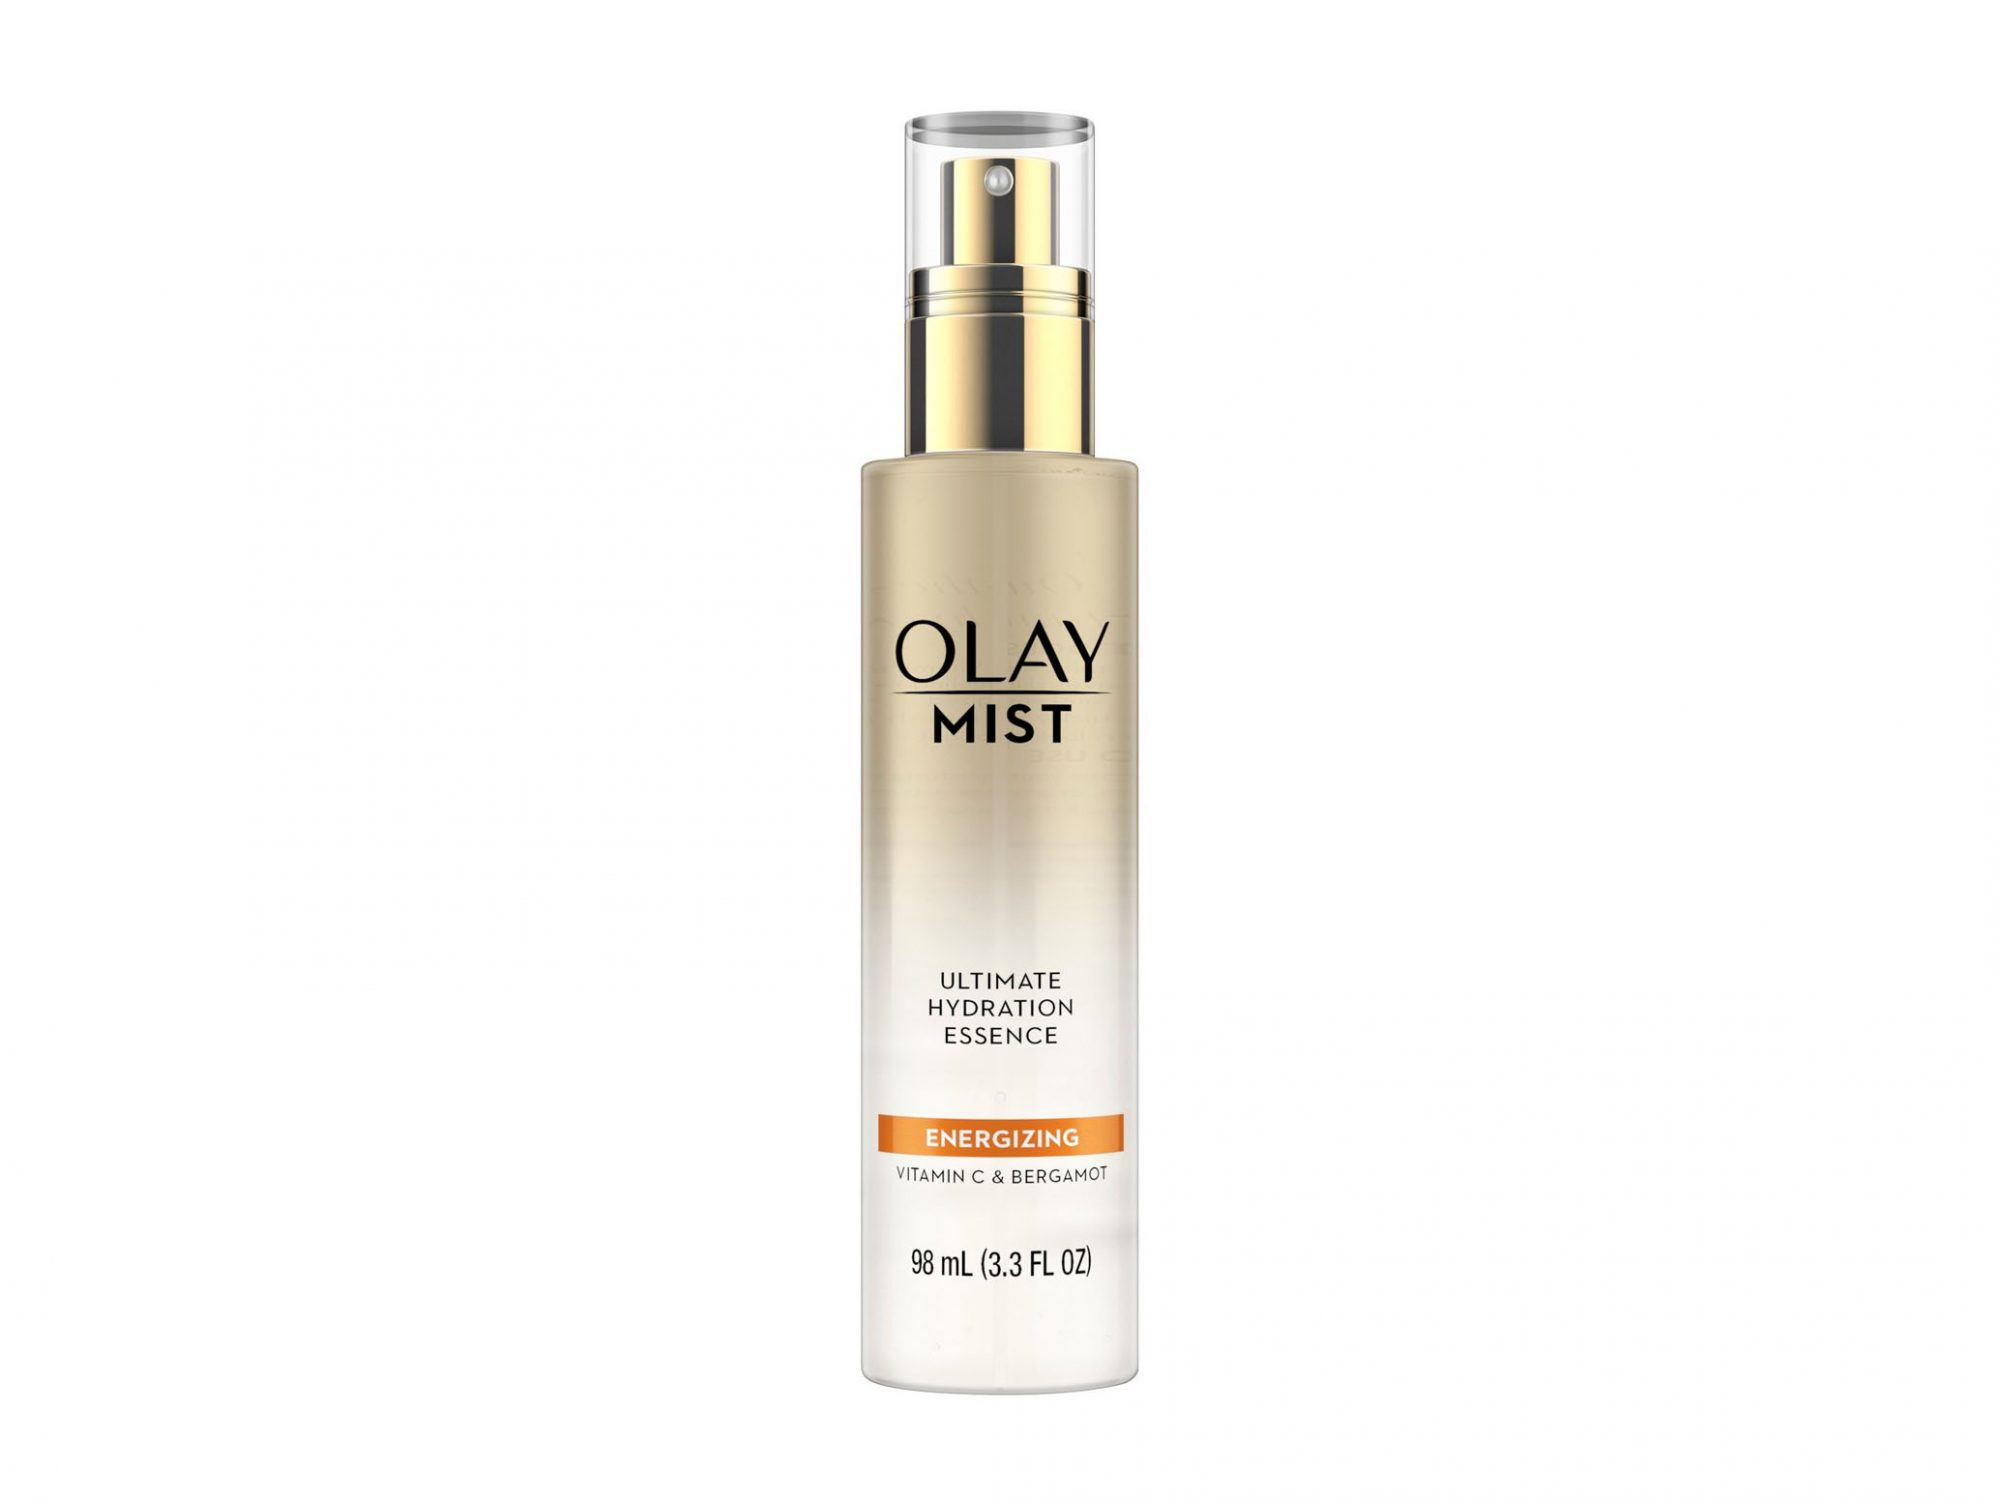 Olay Mist Ultimate Hydration Essence Energizing With Vitamin C & Bergamot